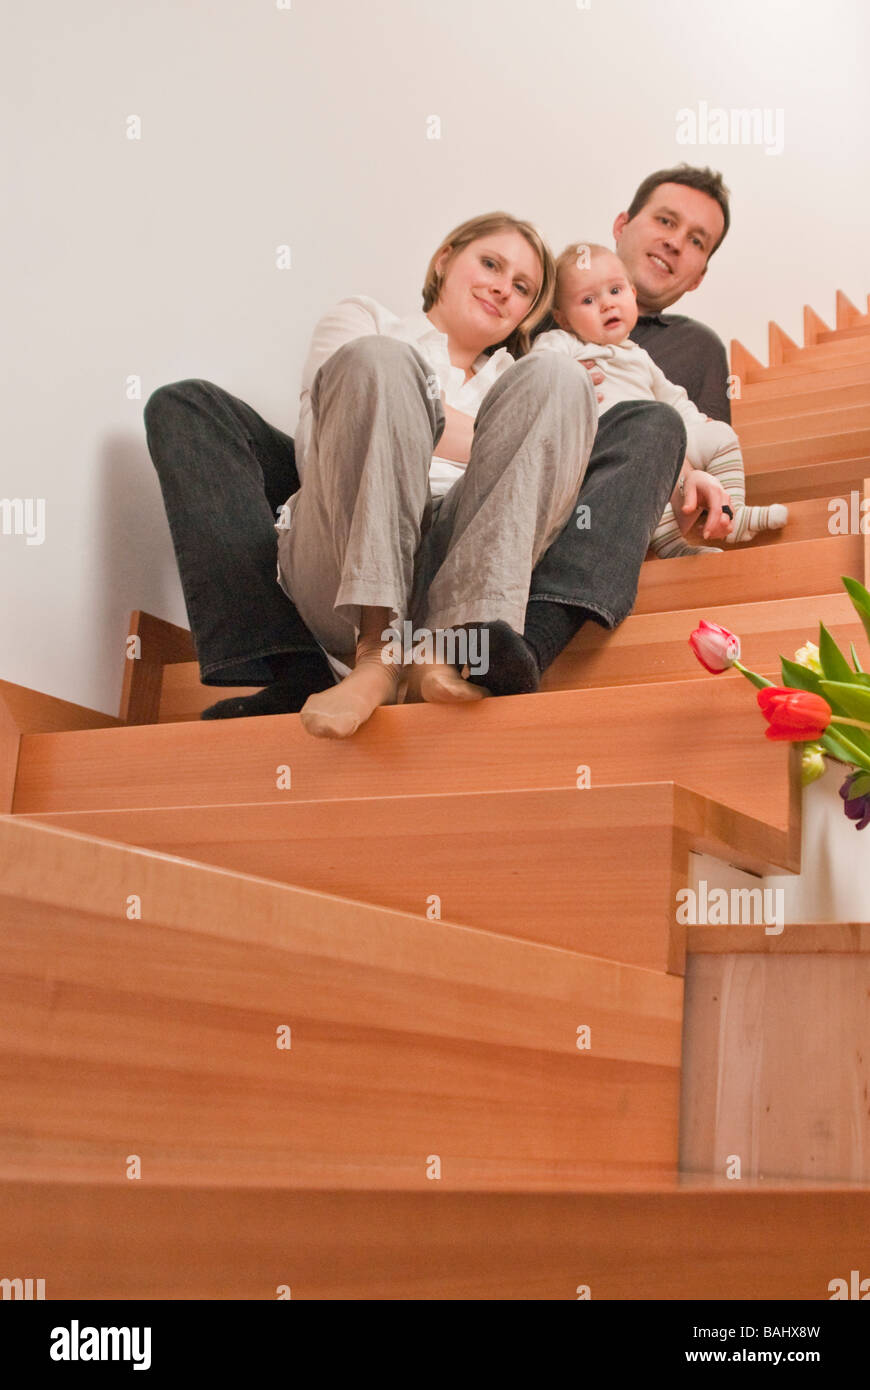 Family sitting on a staircase - Stock Image